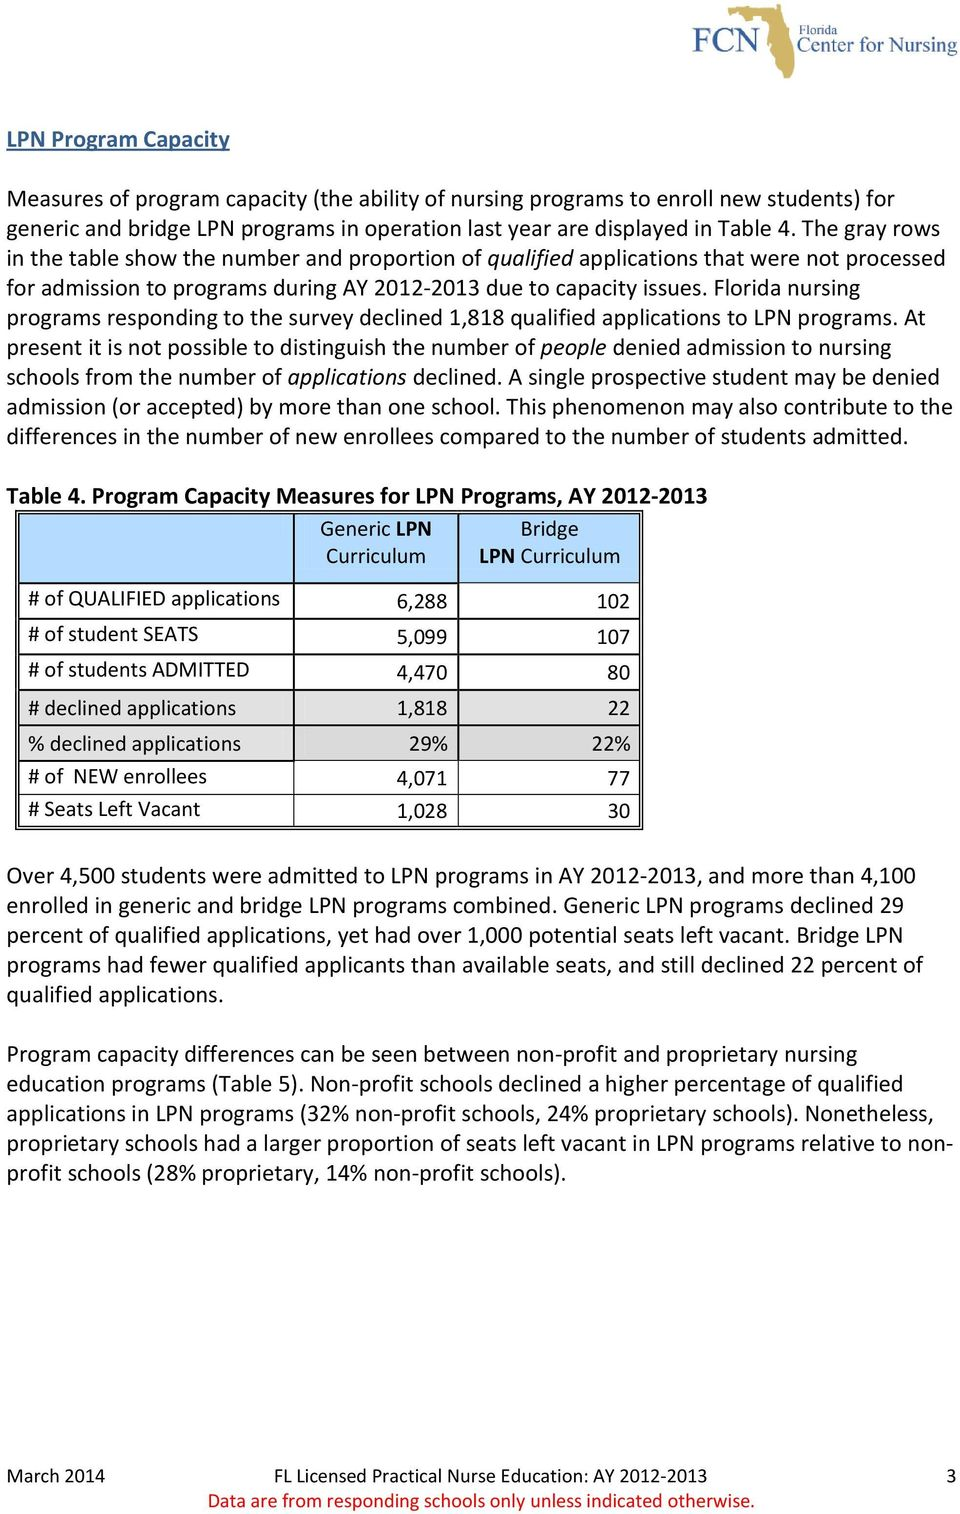 Florida nursing programs responding to the survey declined 1,818 qualified applications to LPN programs.